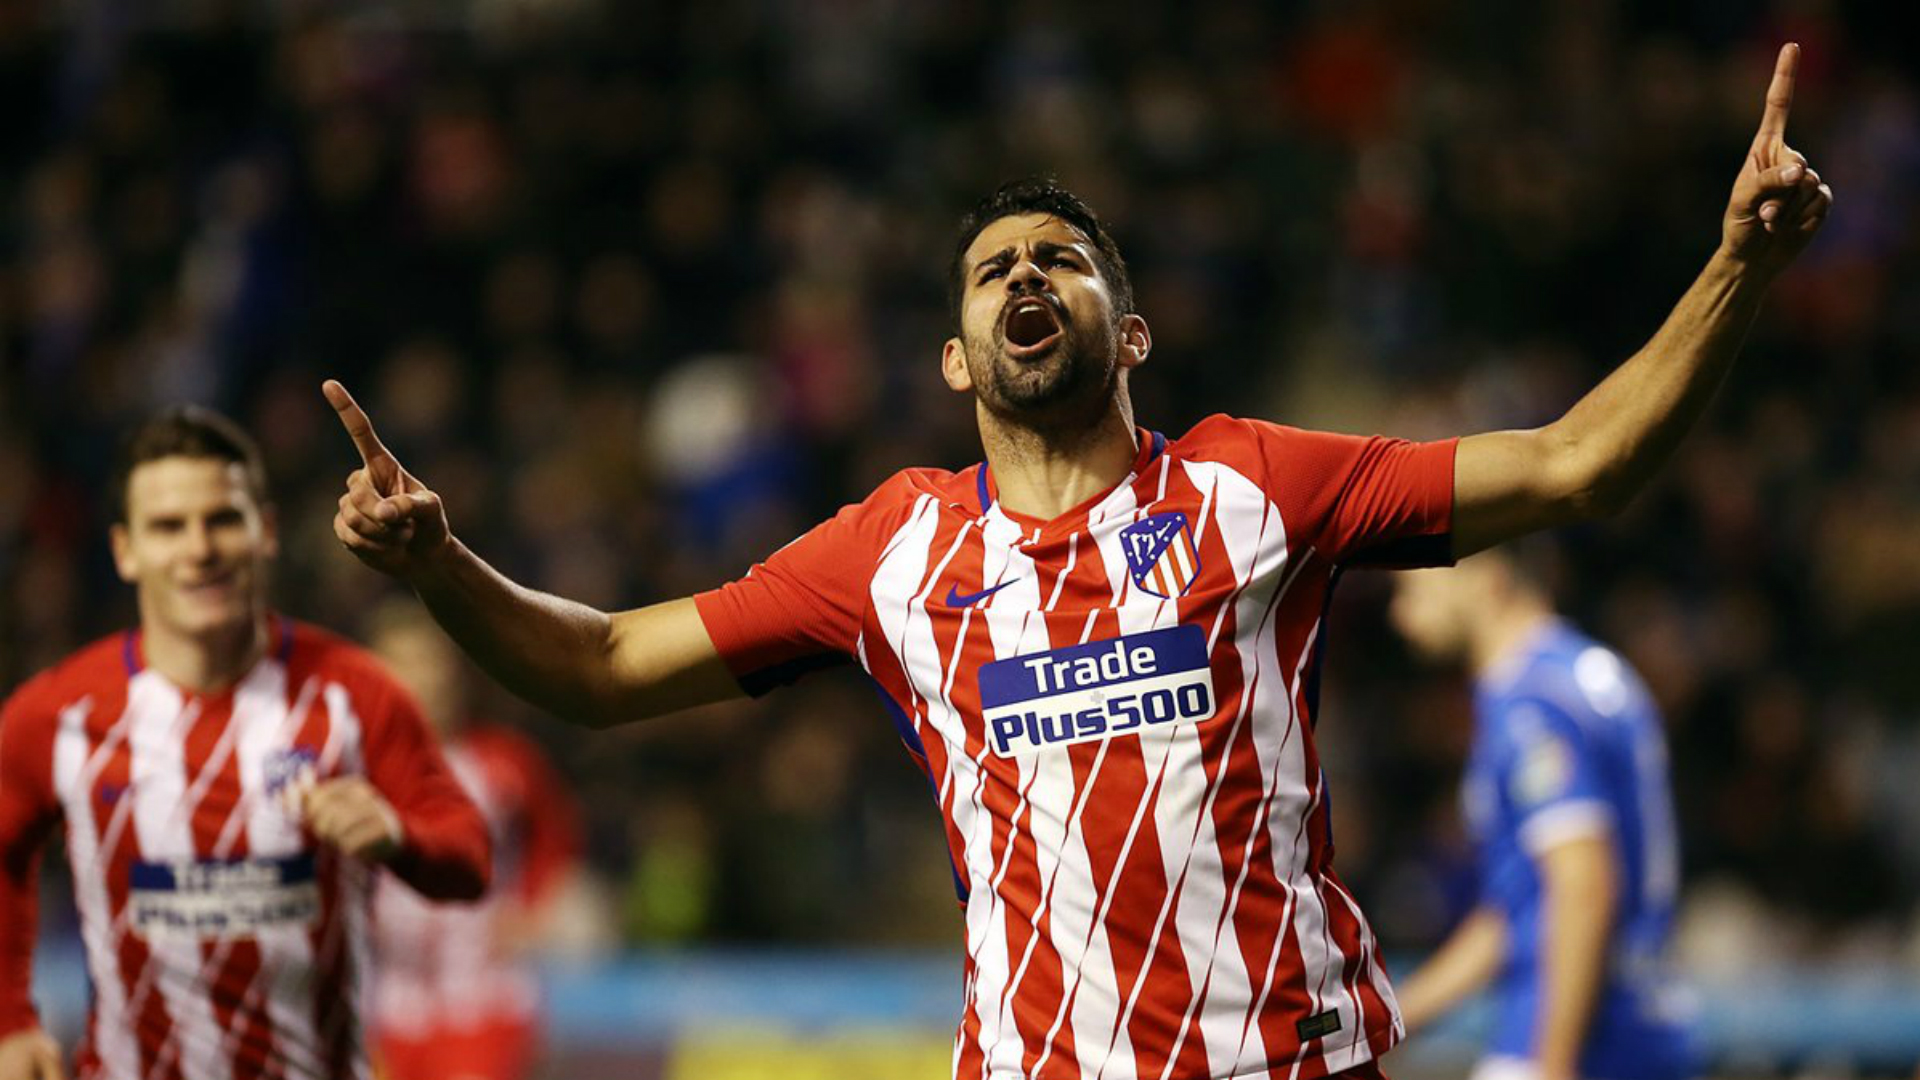 Atletico lifted by return of Costa as La Liga campaign resumes